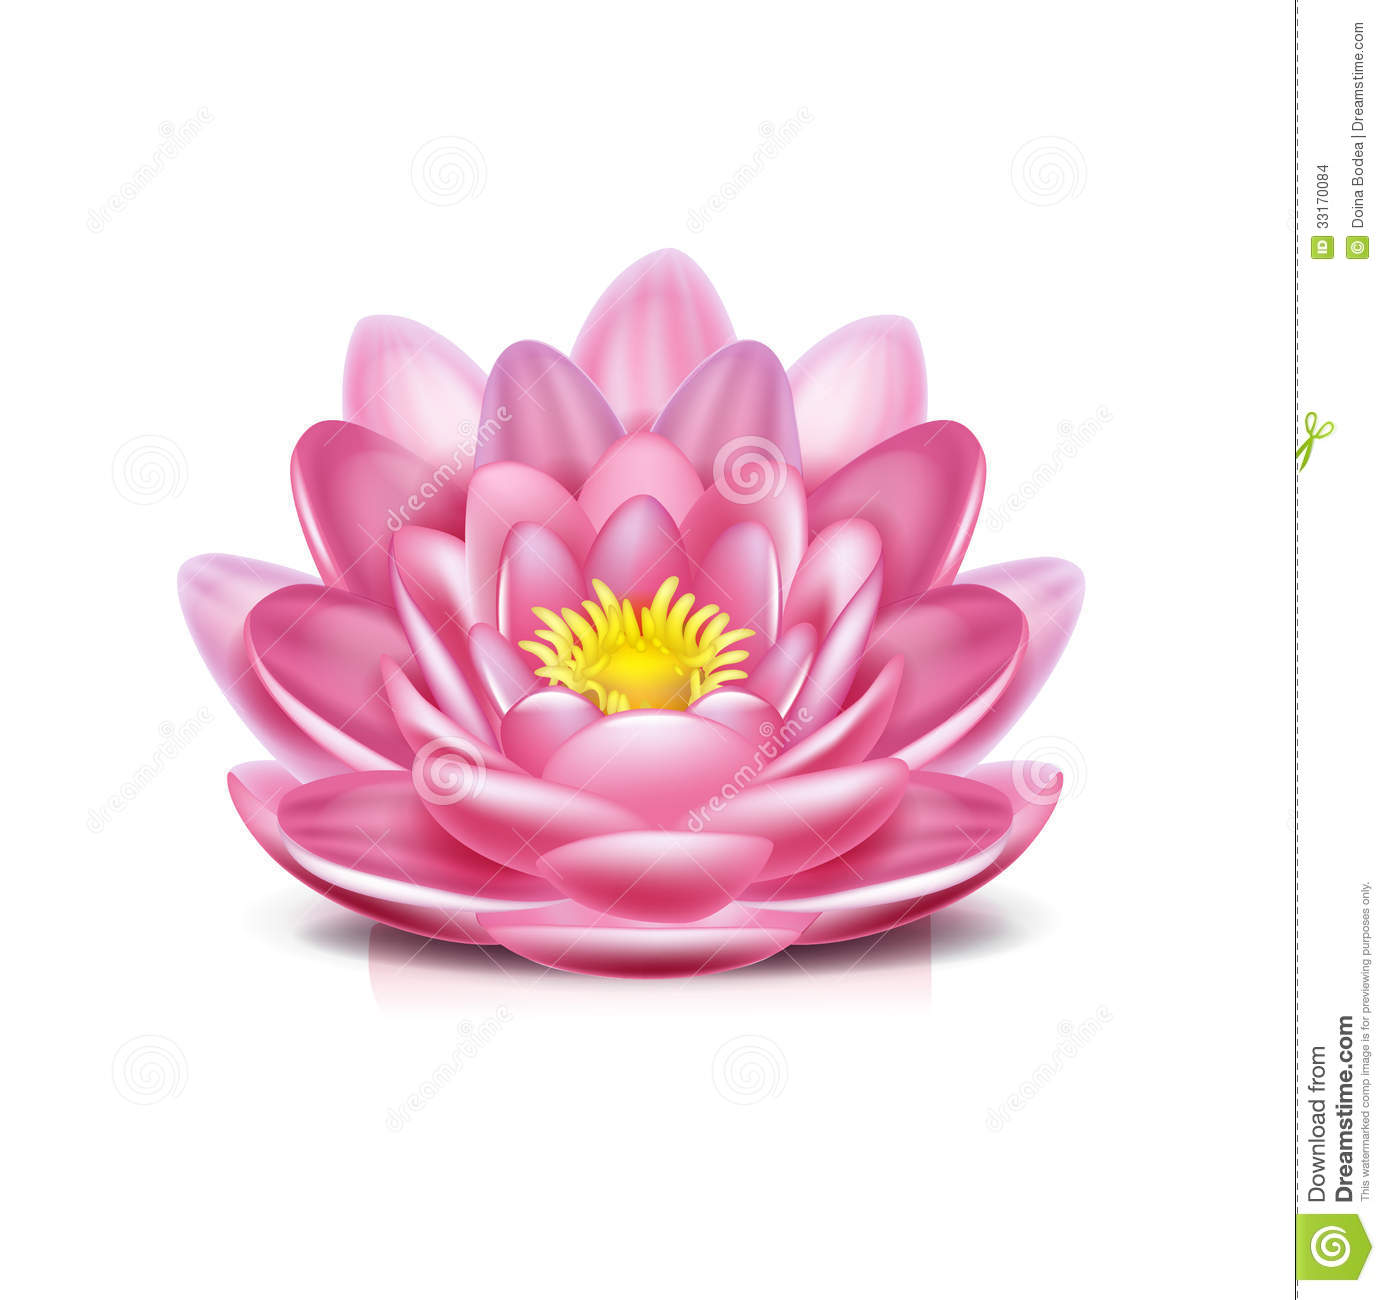 Naughty lotus blossom on the loose - 2 6